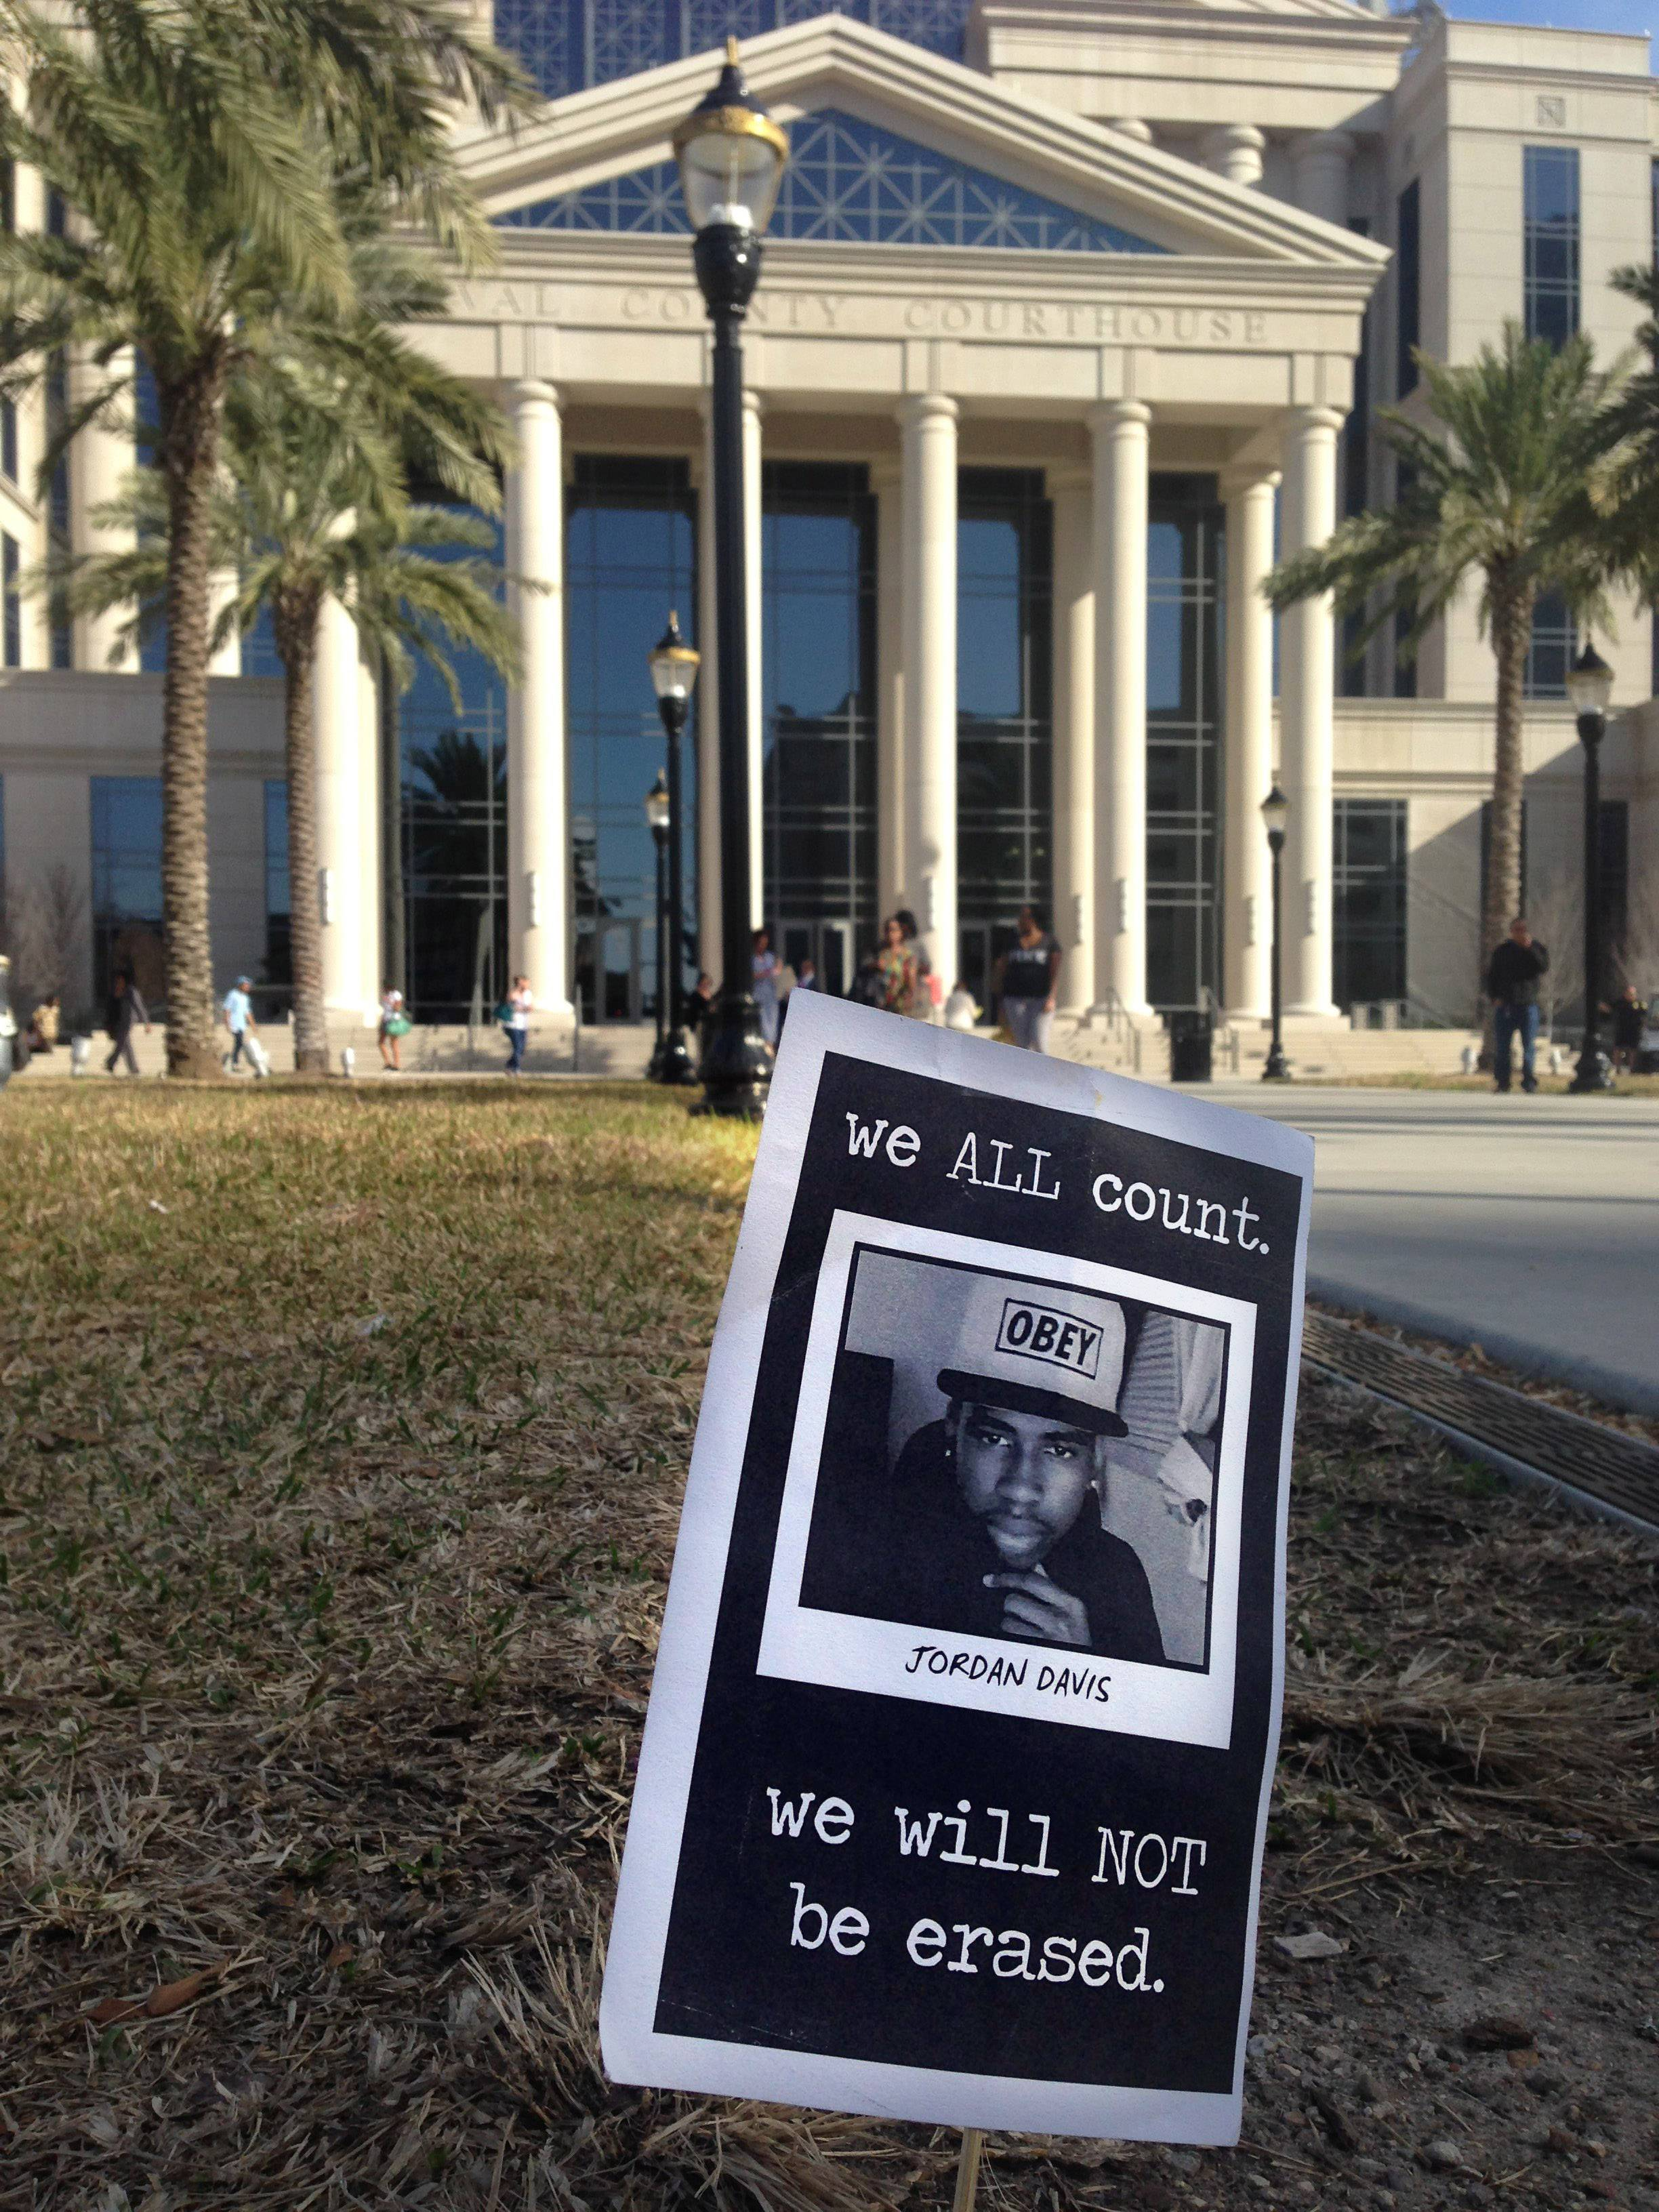 A small memorial to Jordan Davis planted outside the courthouse in Jacksonville, Fla. After more than 30 hours of jury deliberations over four days, a mistrial was declared Saturday on the murder charge that Michael Dunn faced in the fatal shooting Davis.